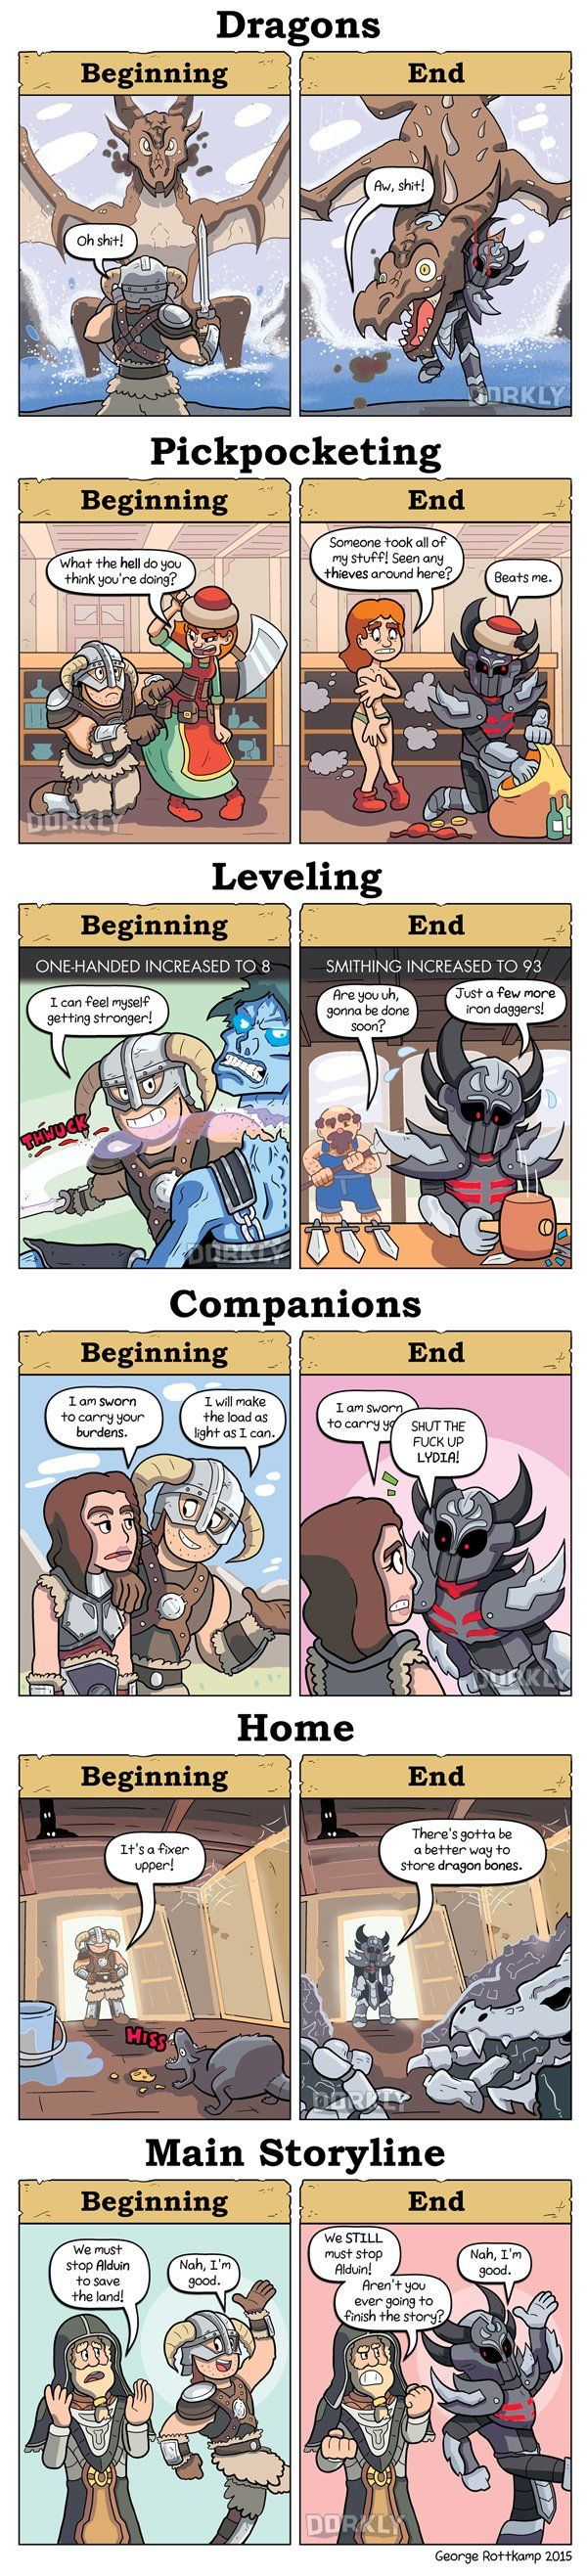 A fantastic comic by George Rottkamp and Tristan Cooper from Dorkly taking a look at how players handle various situation at the beggining vs. the end of Skyrim